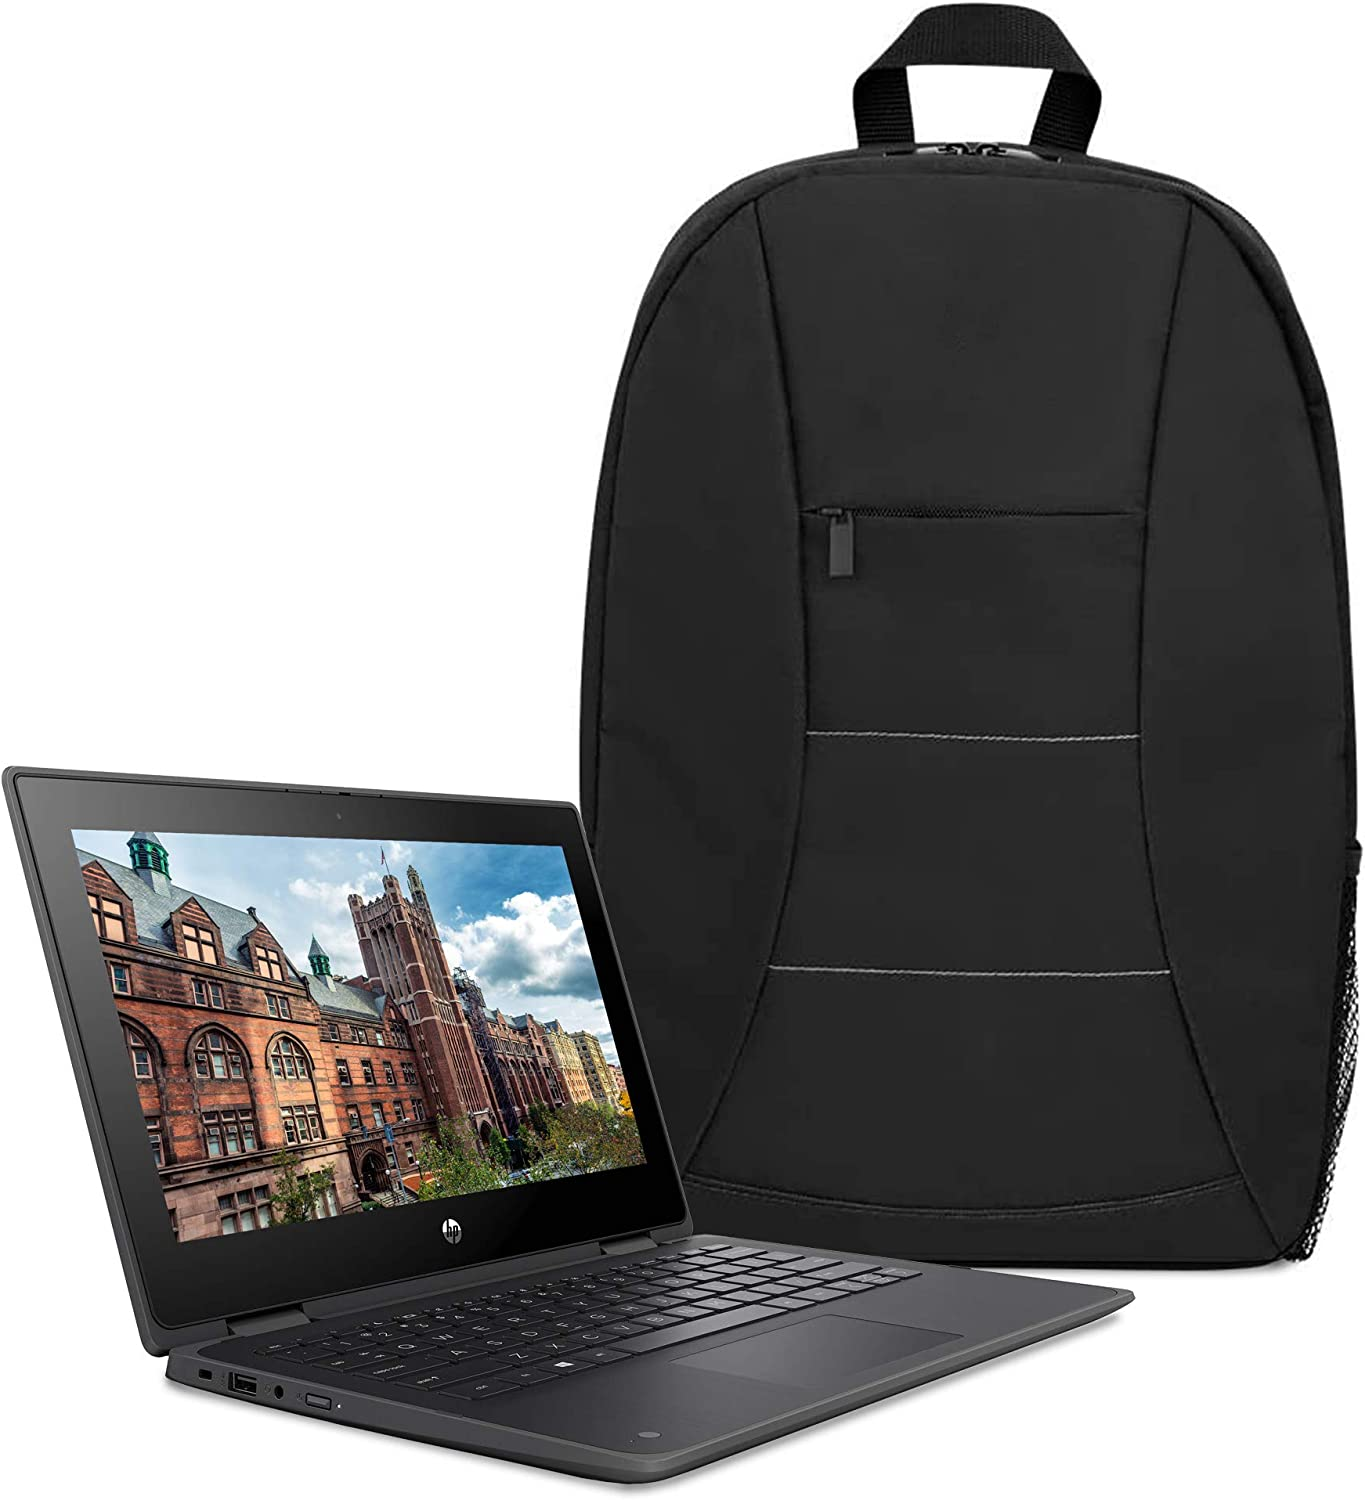 HP ProBook x360 11 G5 2 in Bundle Max Columbus Mall 41% OFF N Laptop Touchscreen with 1 PC